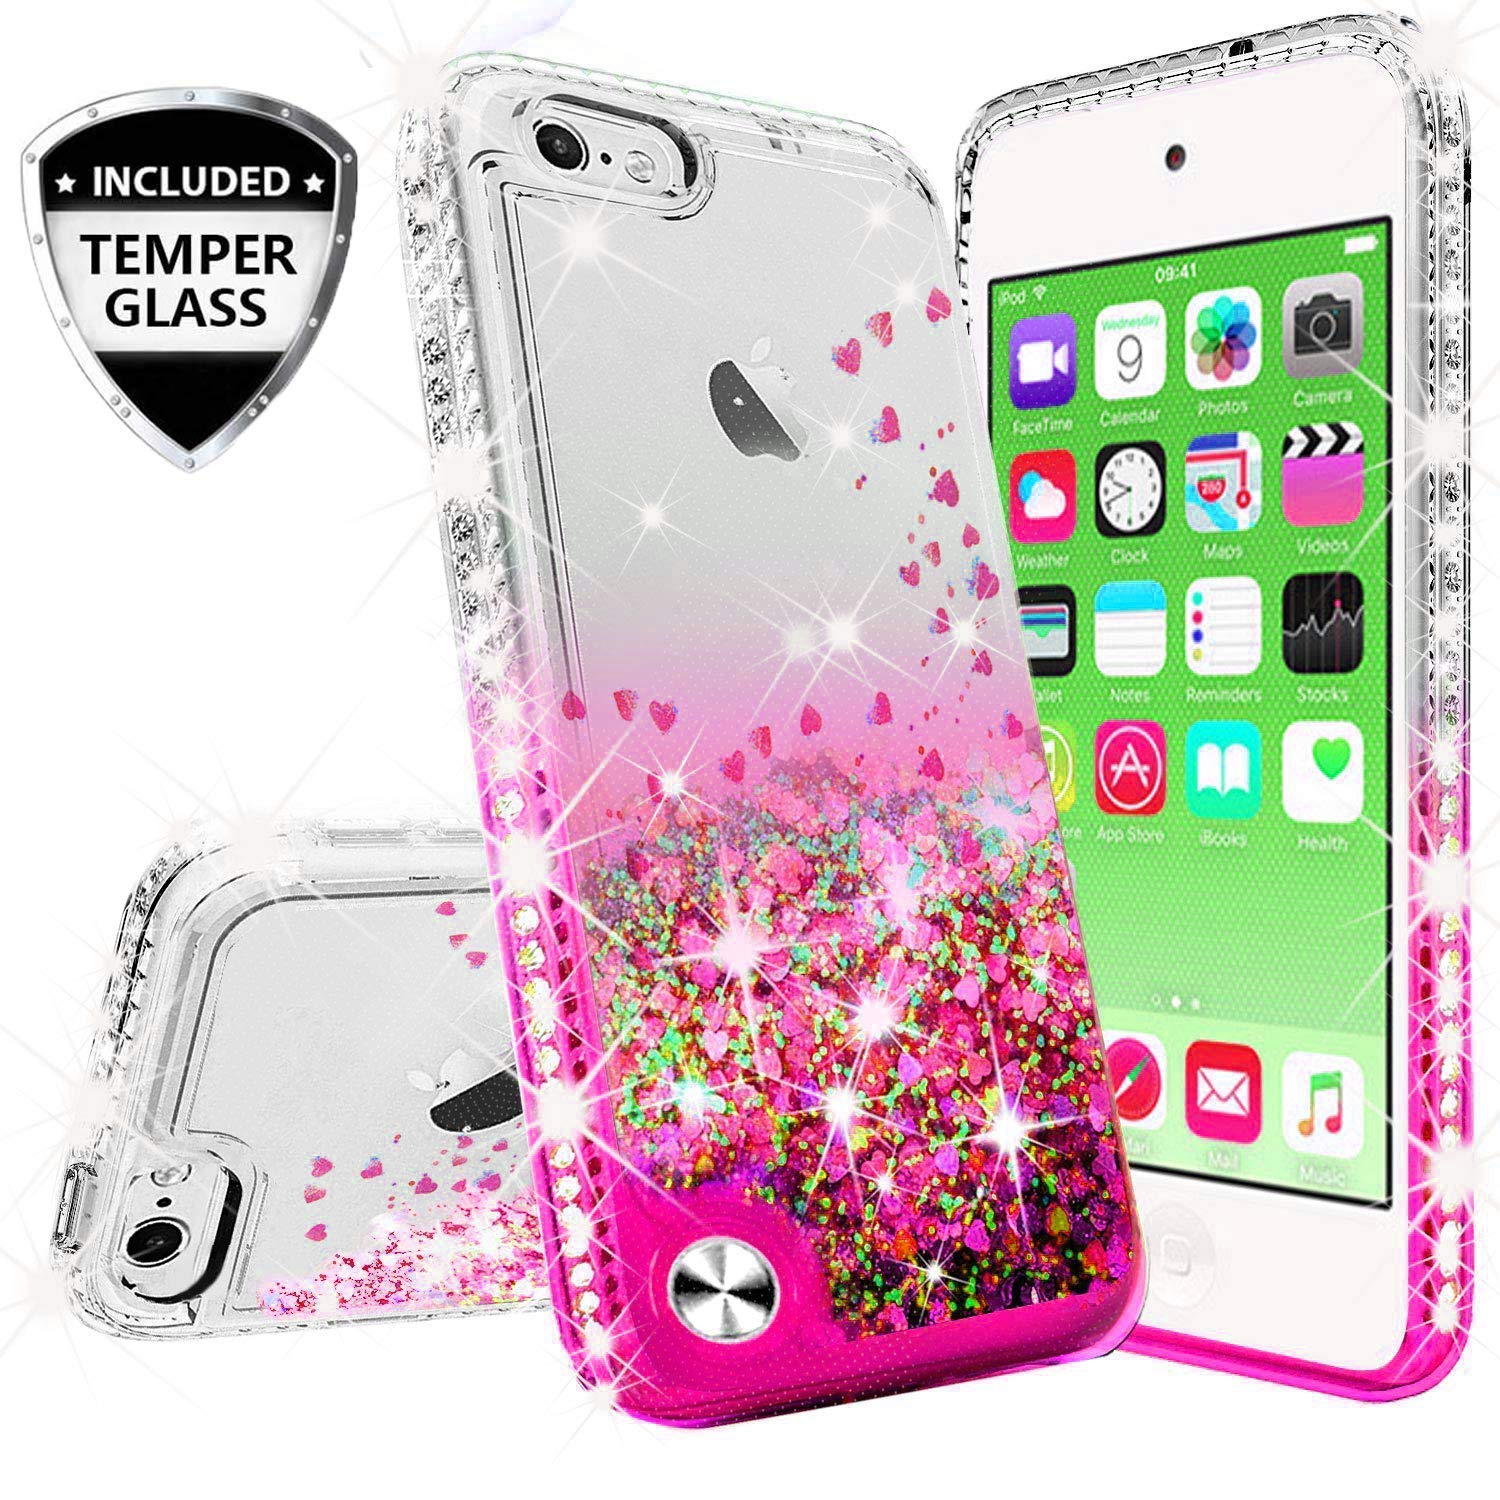 Compatible for Apple iPhone 8 Plus Case, iPhone 7 Plus Case, with [Temper Glass Screen Protector] SOGA Diamond Glitter Liquid Quicksand Cover Cute Girl Women Phone Case [Cear/Pink]